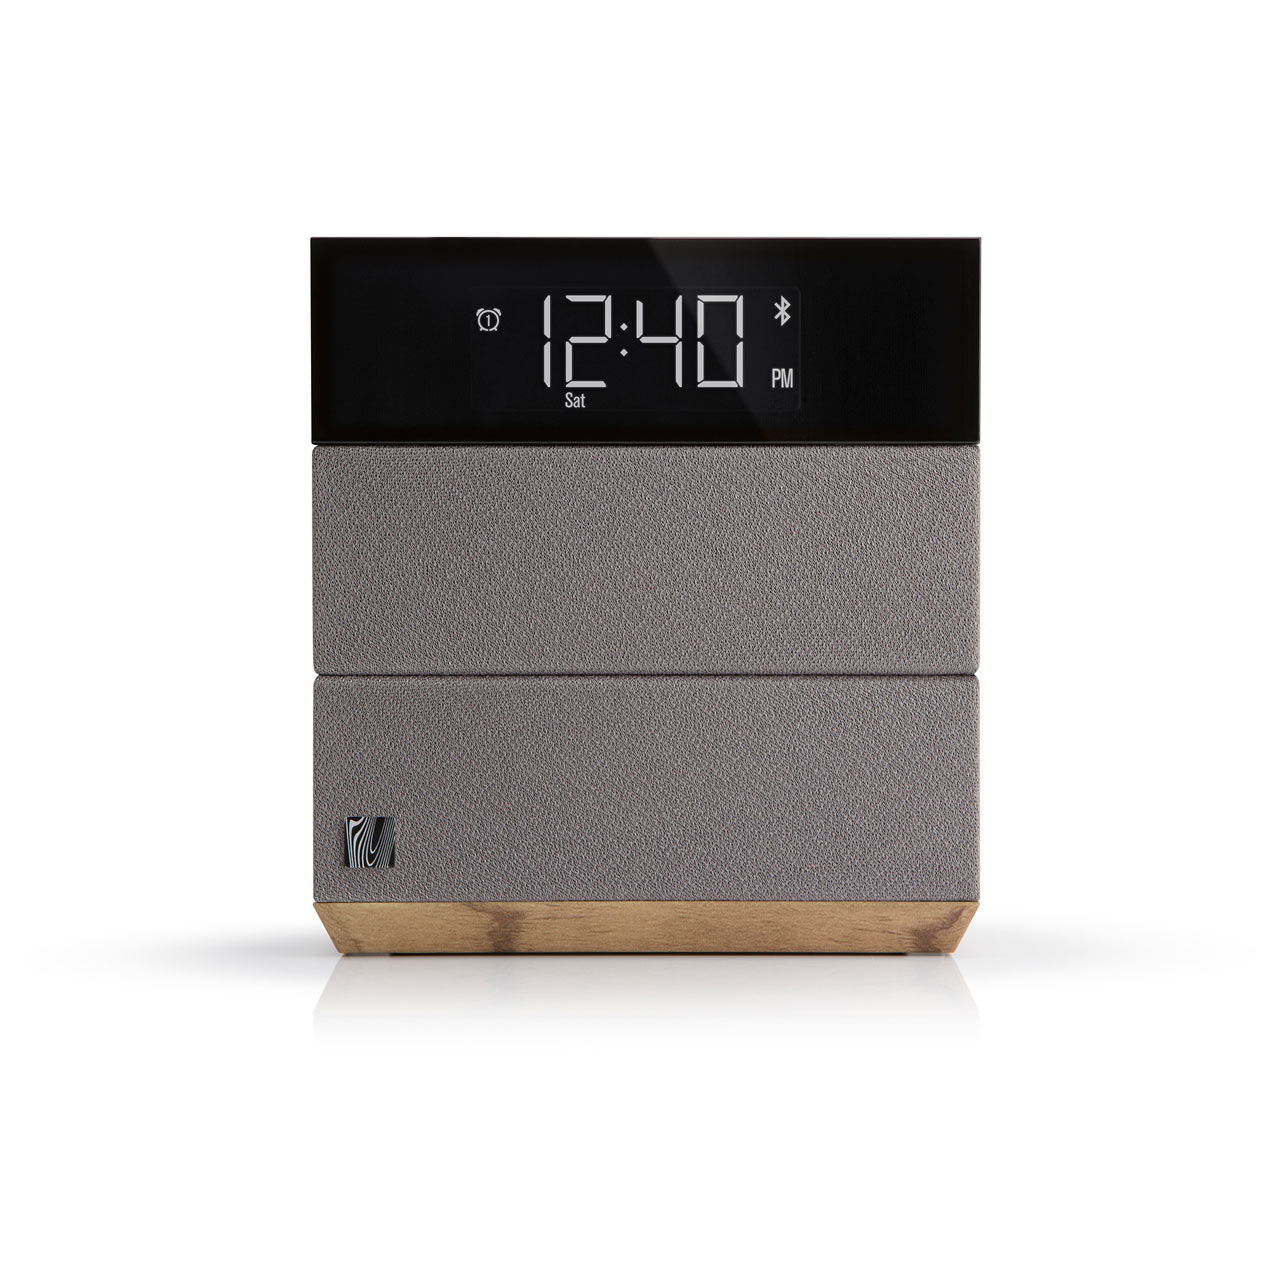 Soundfreaq-Sound-Rise-Clock-3